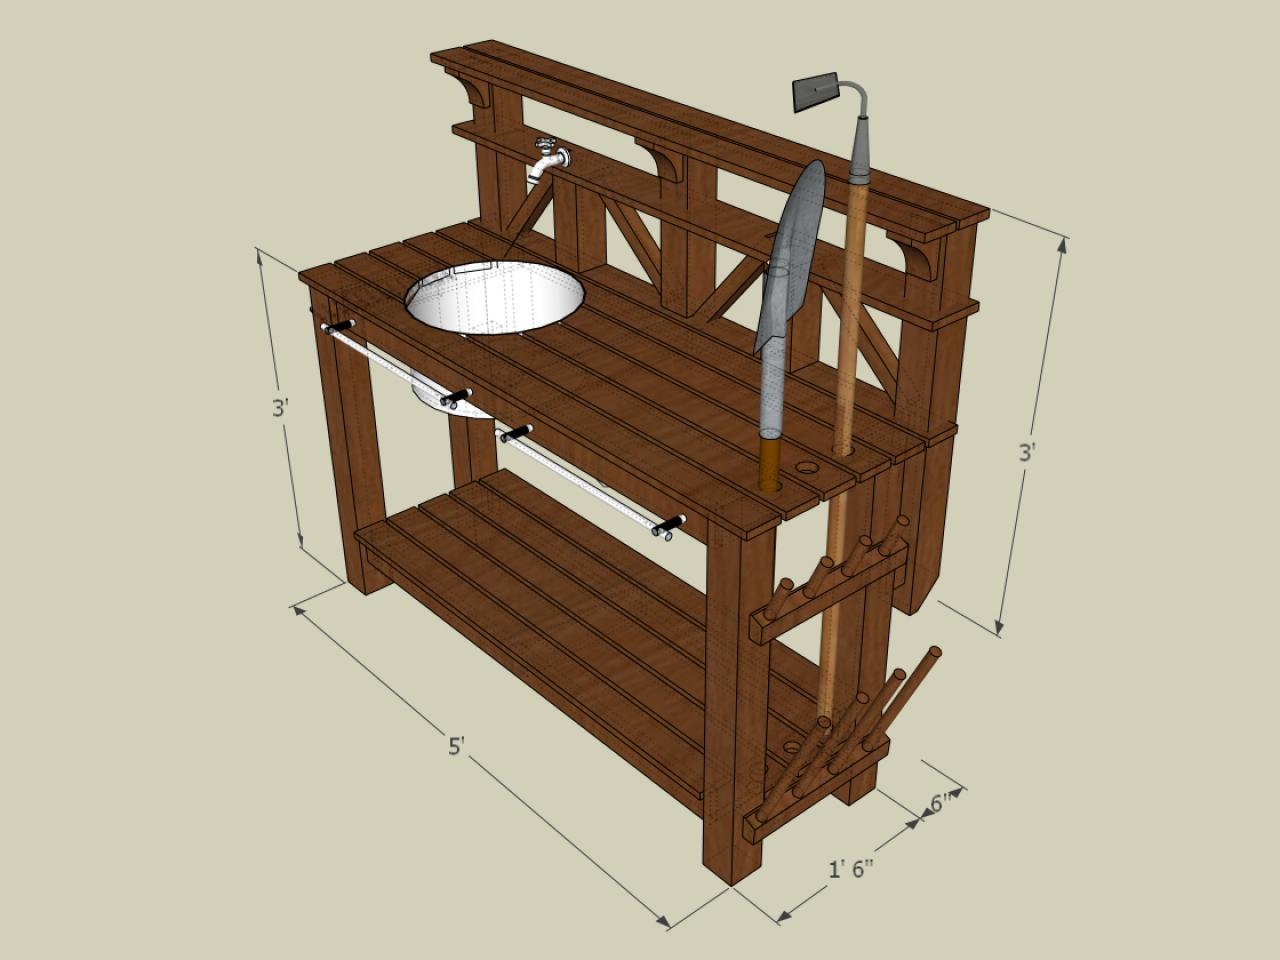 How to Make a Gardeners Potting Bench howtos – Garden Workbench Plans